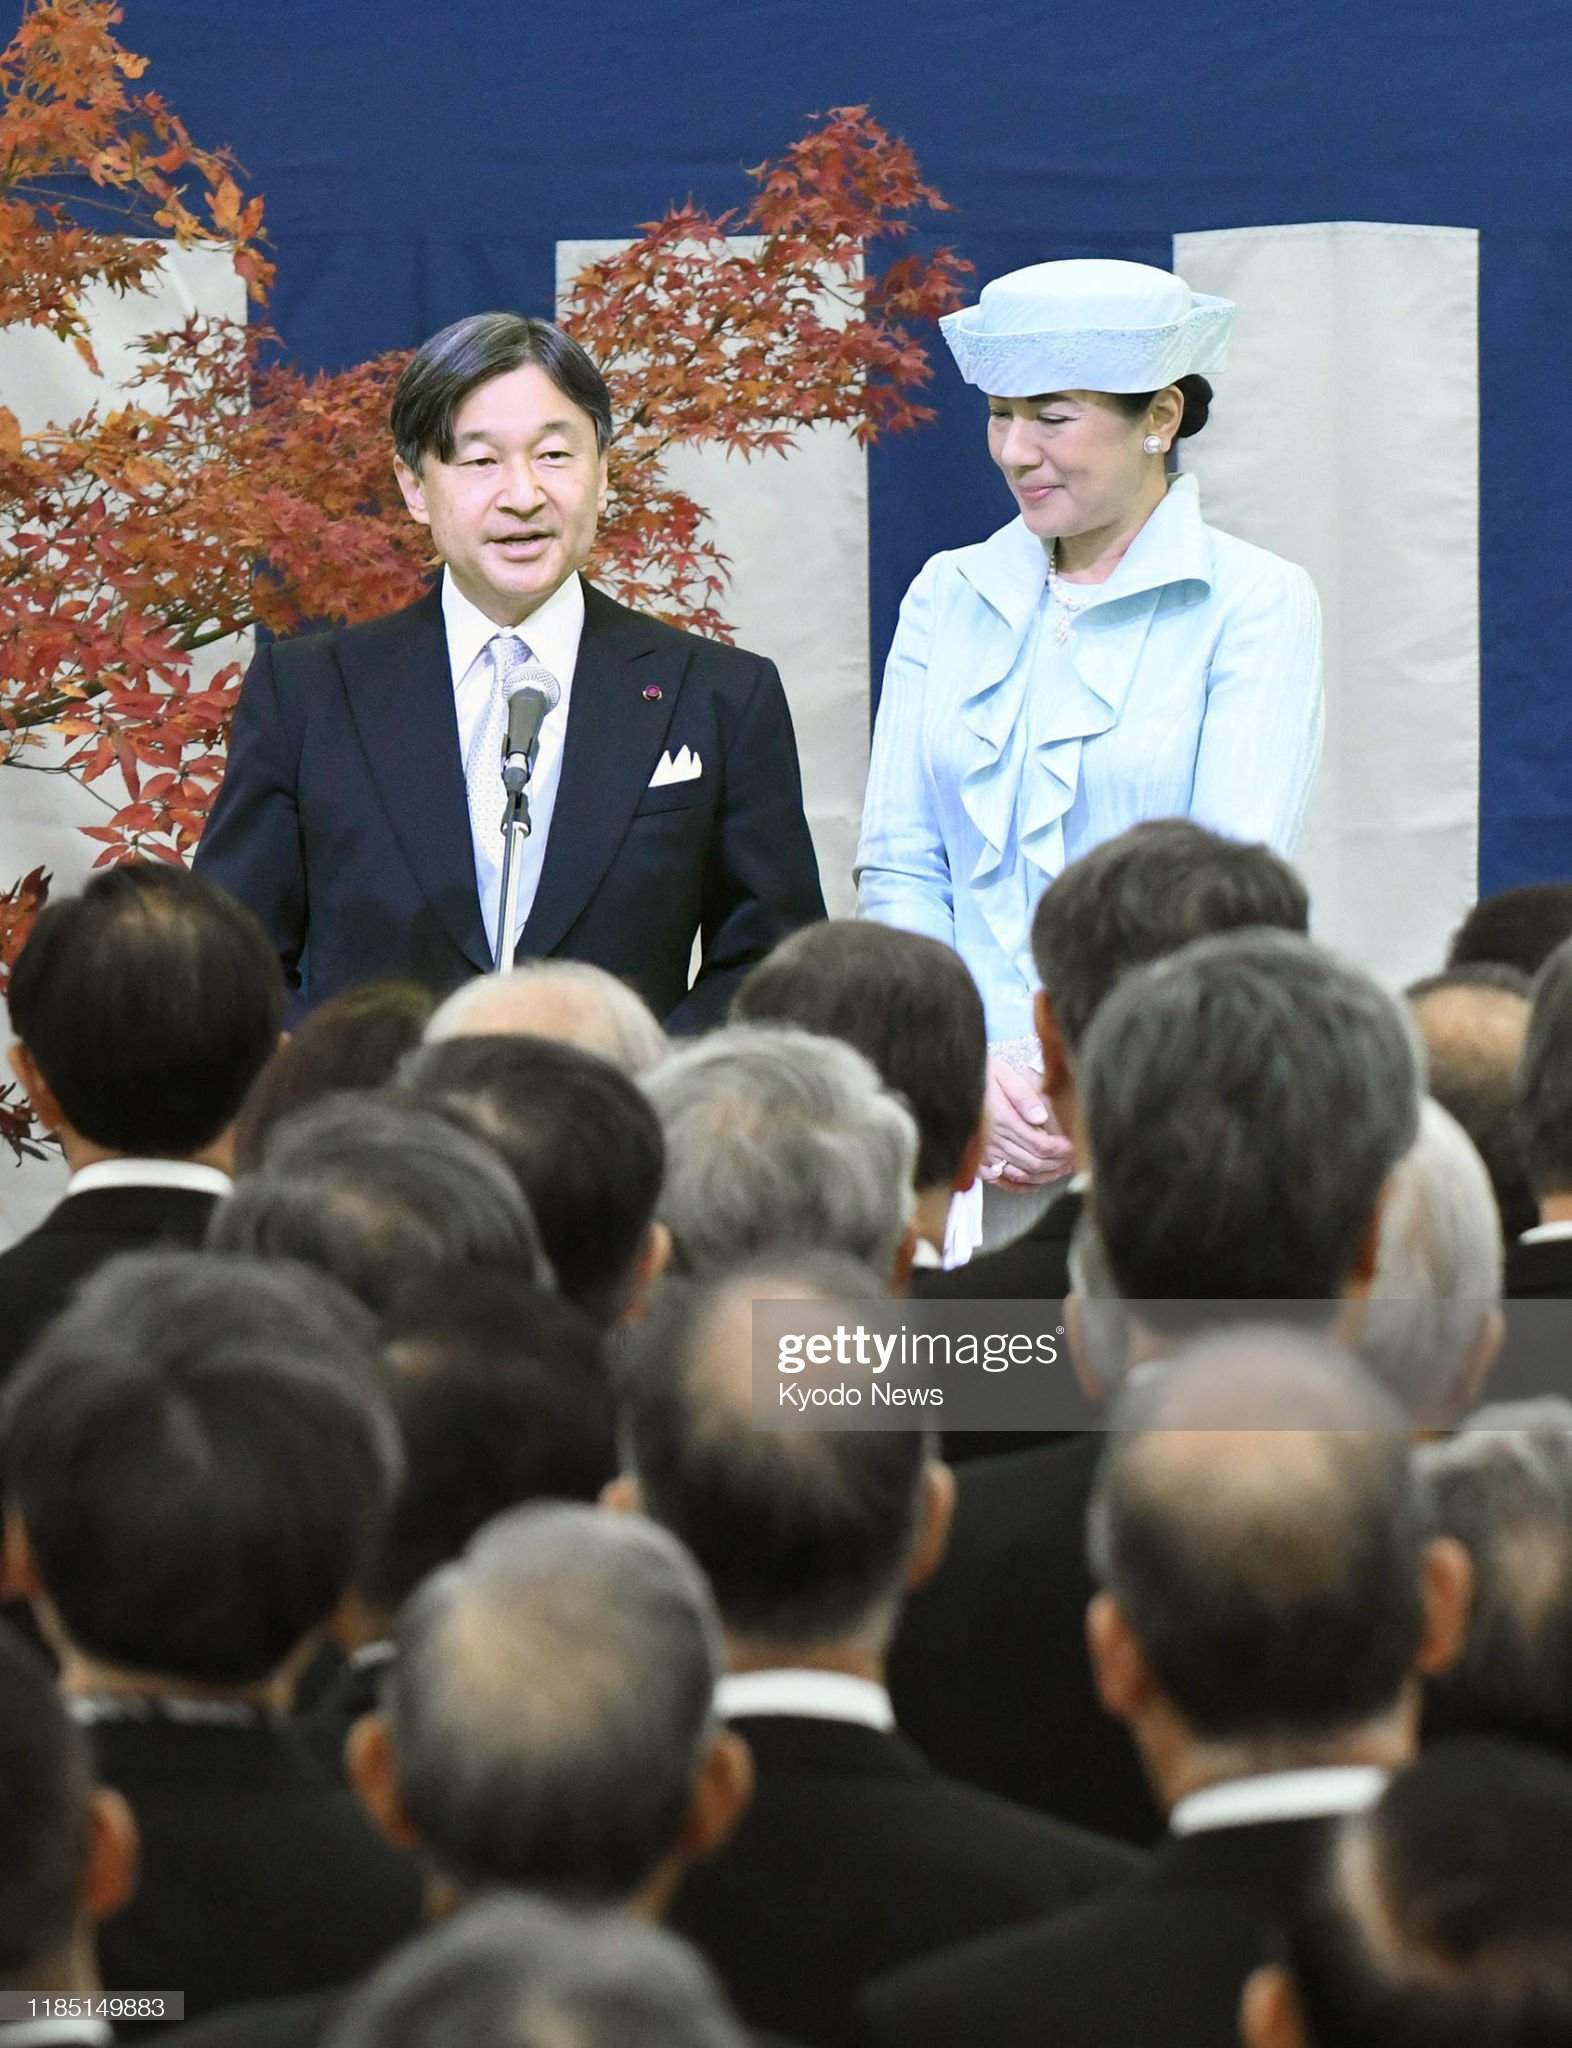 japanese-emperor-naruhito-and-empress-masako-attend-a-tea-party-by-picture-id1185149883